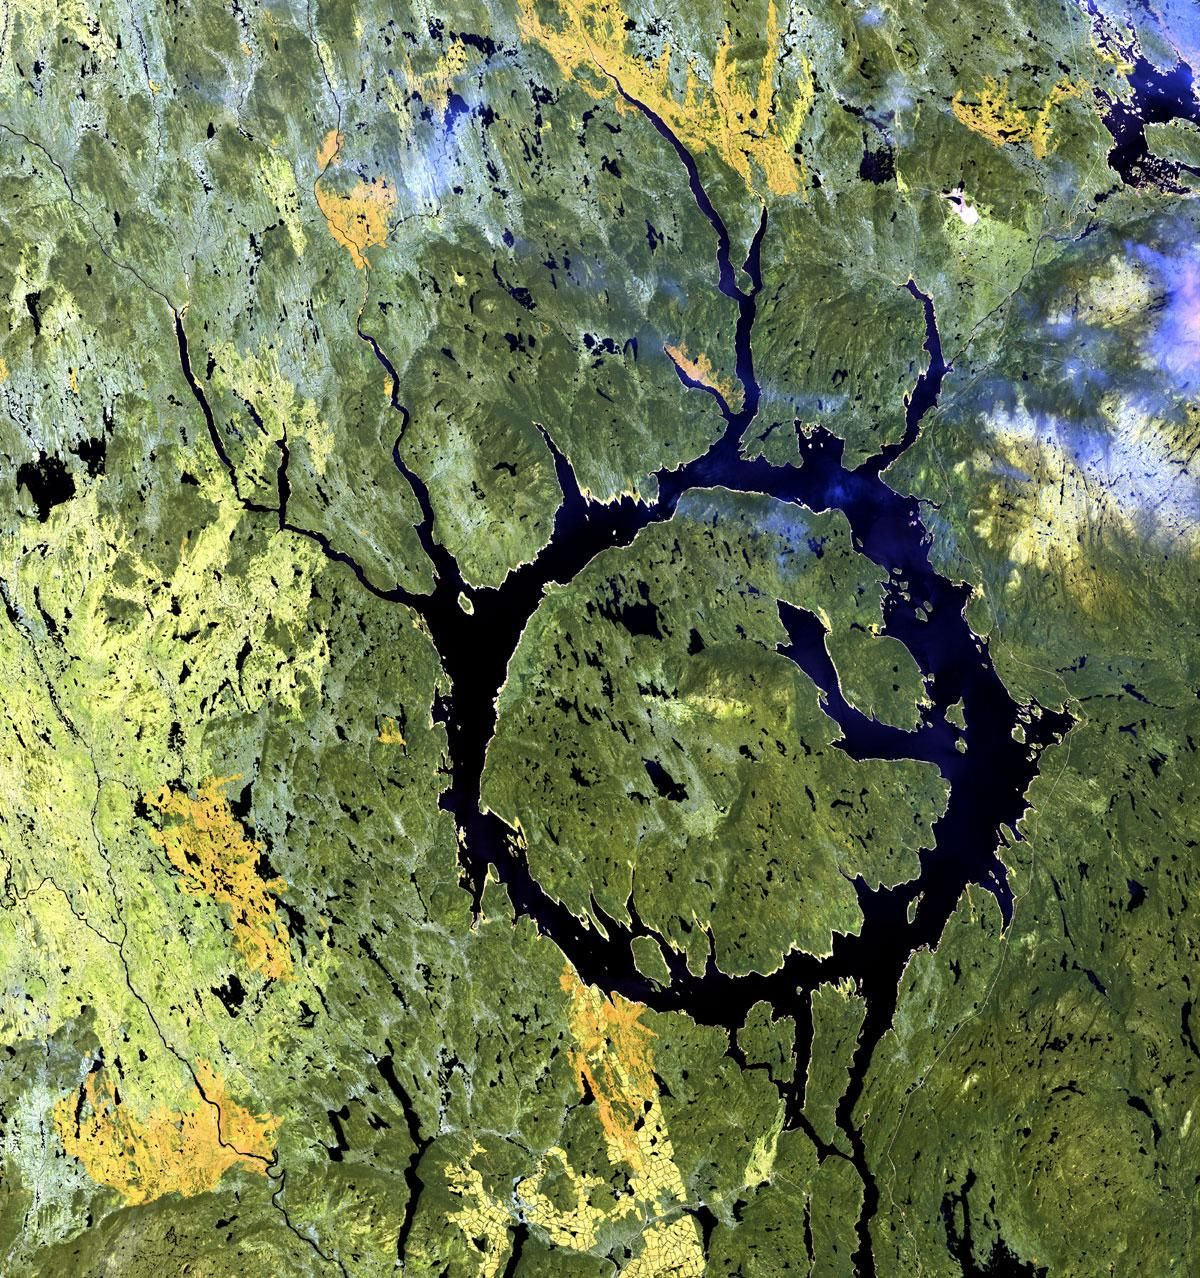 A lake-filled crater, Manicouagan in Quebec is one the largest and best-preserved crater on the planet. The 62-mile-wide (100 km) crater is 214 million years old.